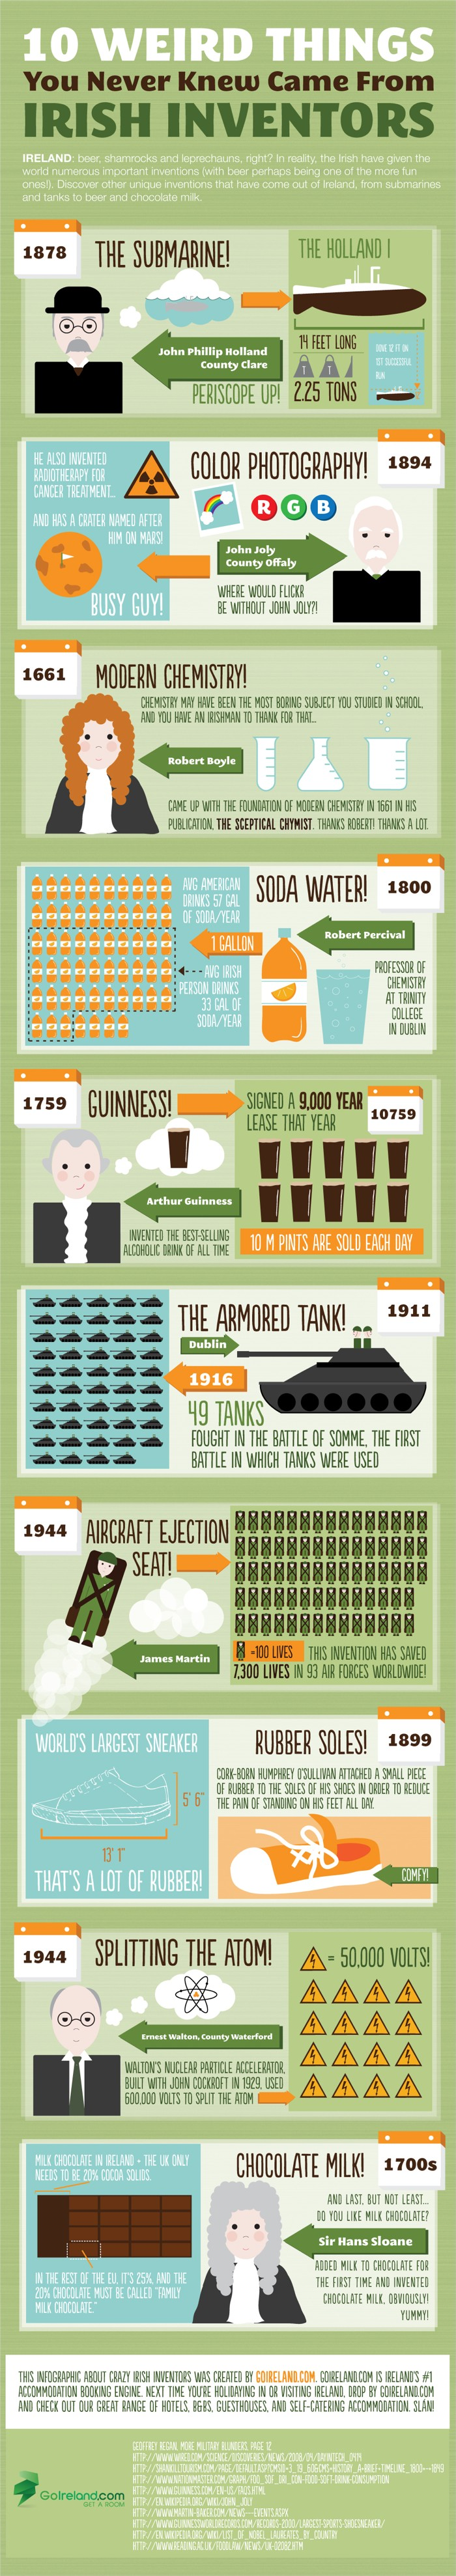 Irish Inventions